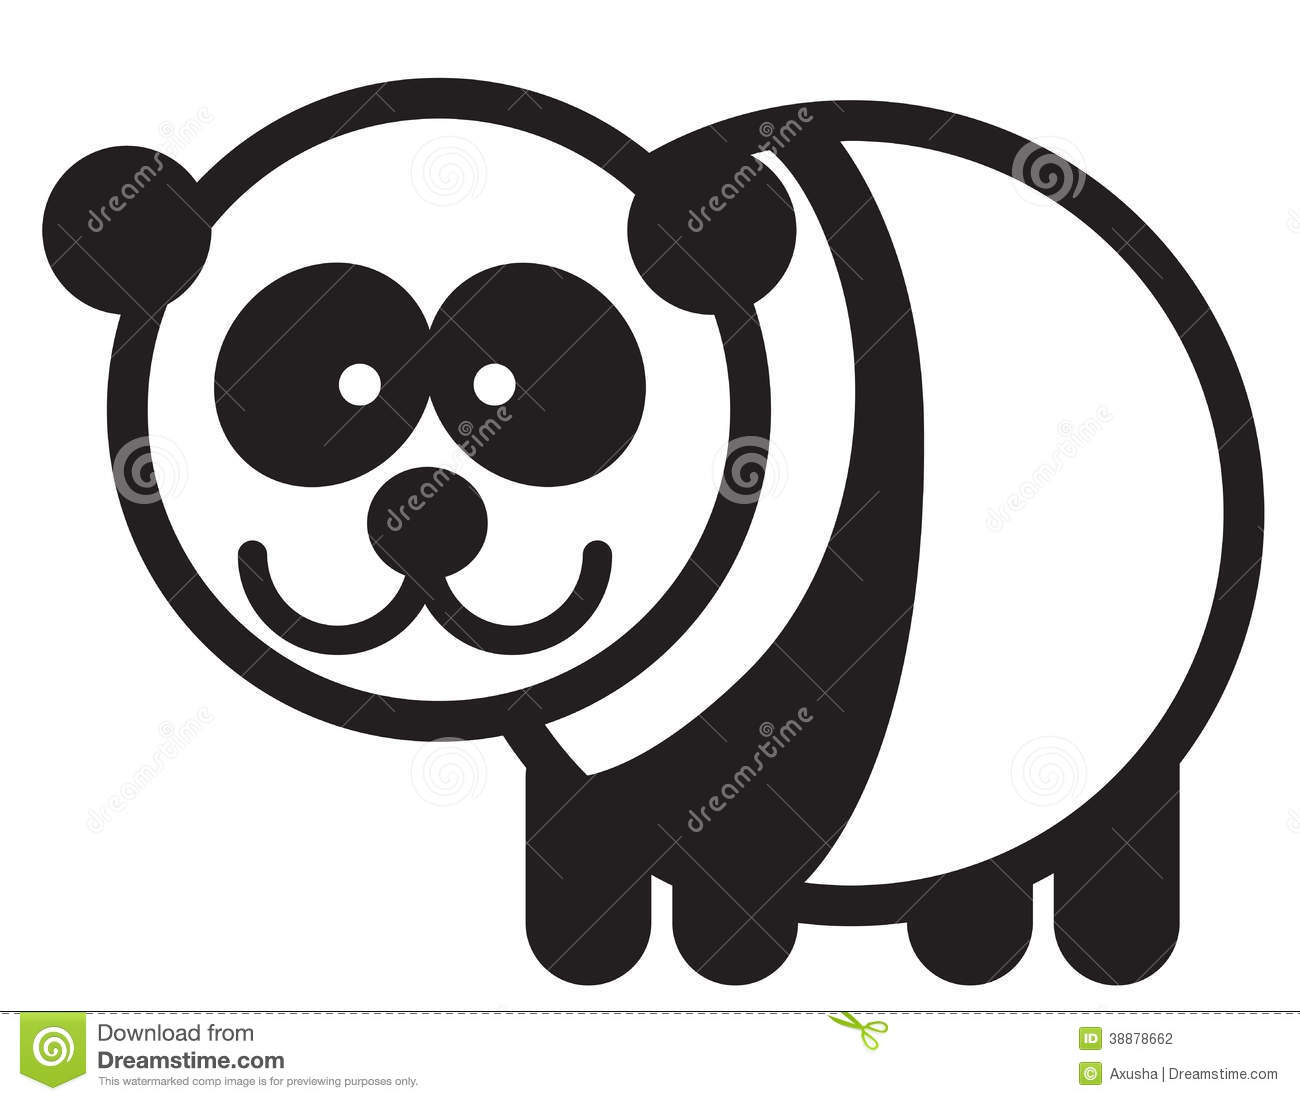 Cute simple black and white panda for logo.